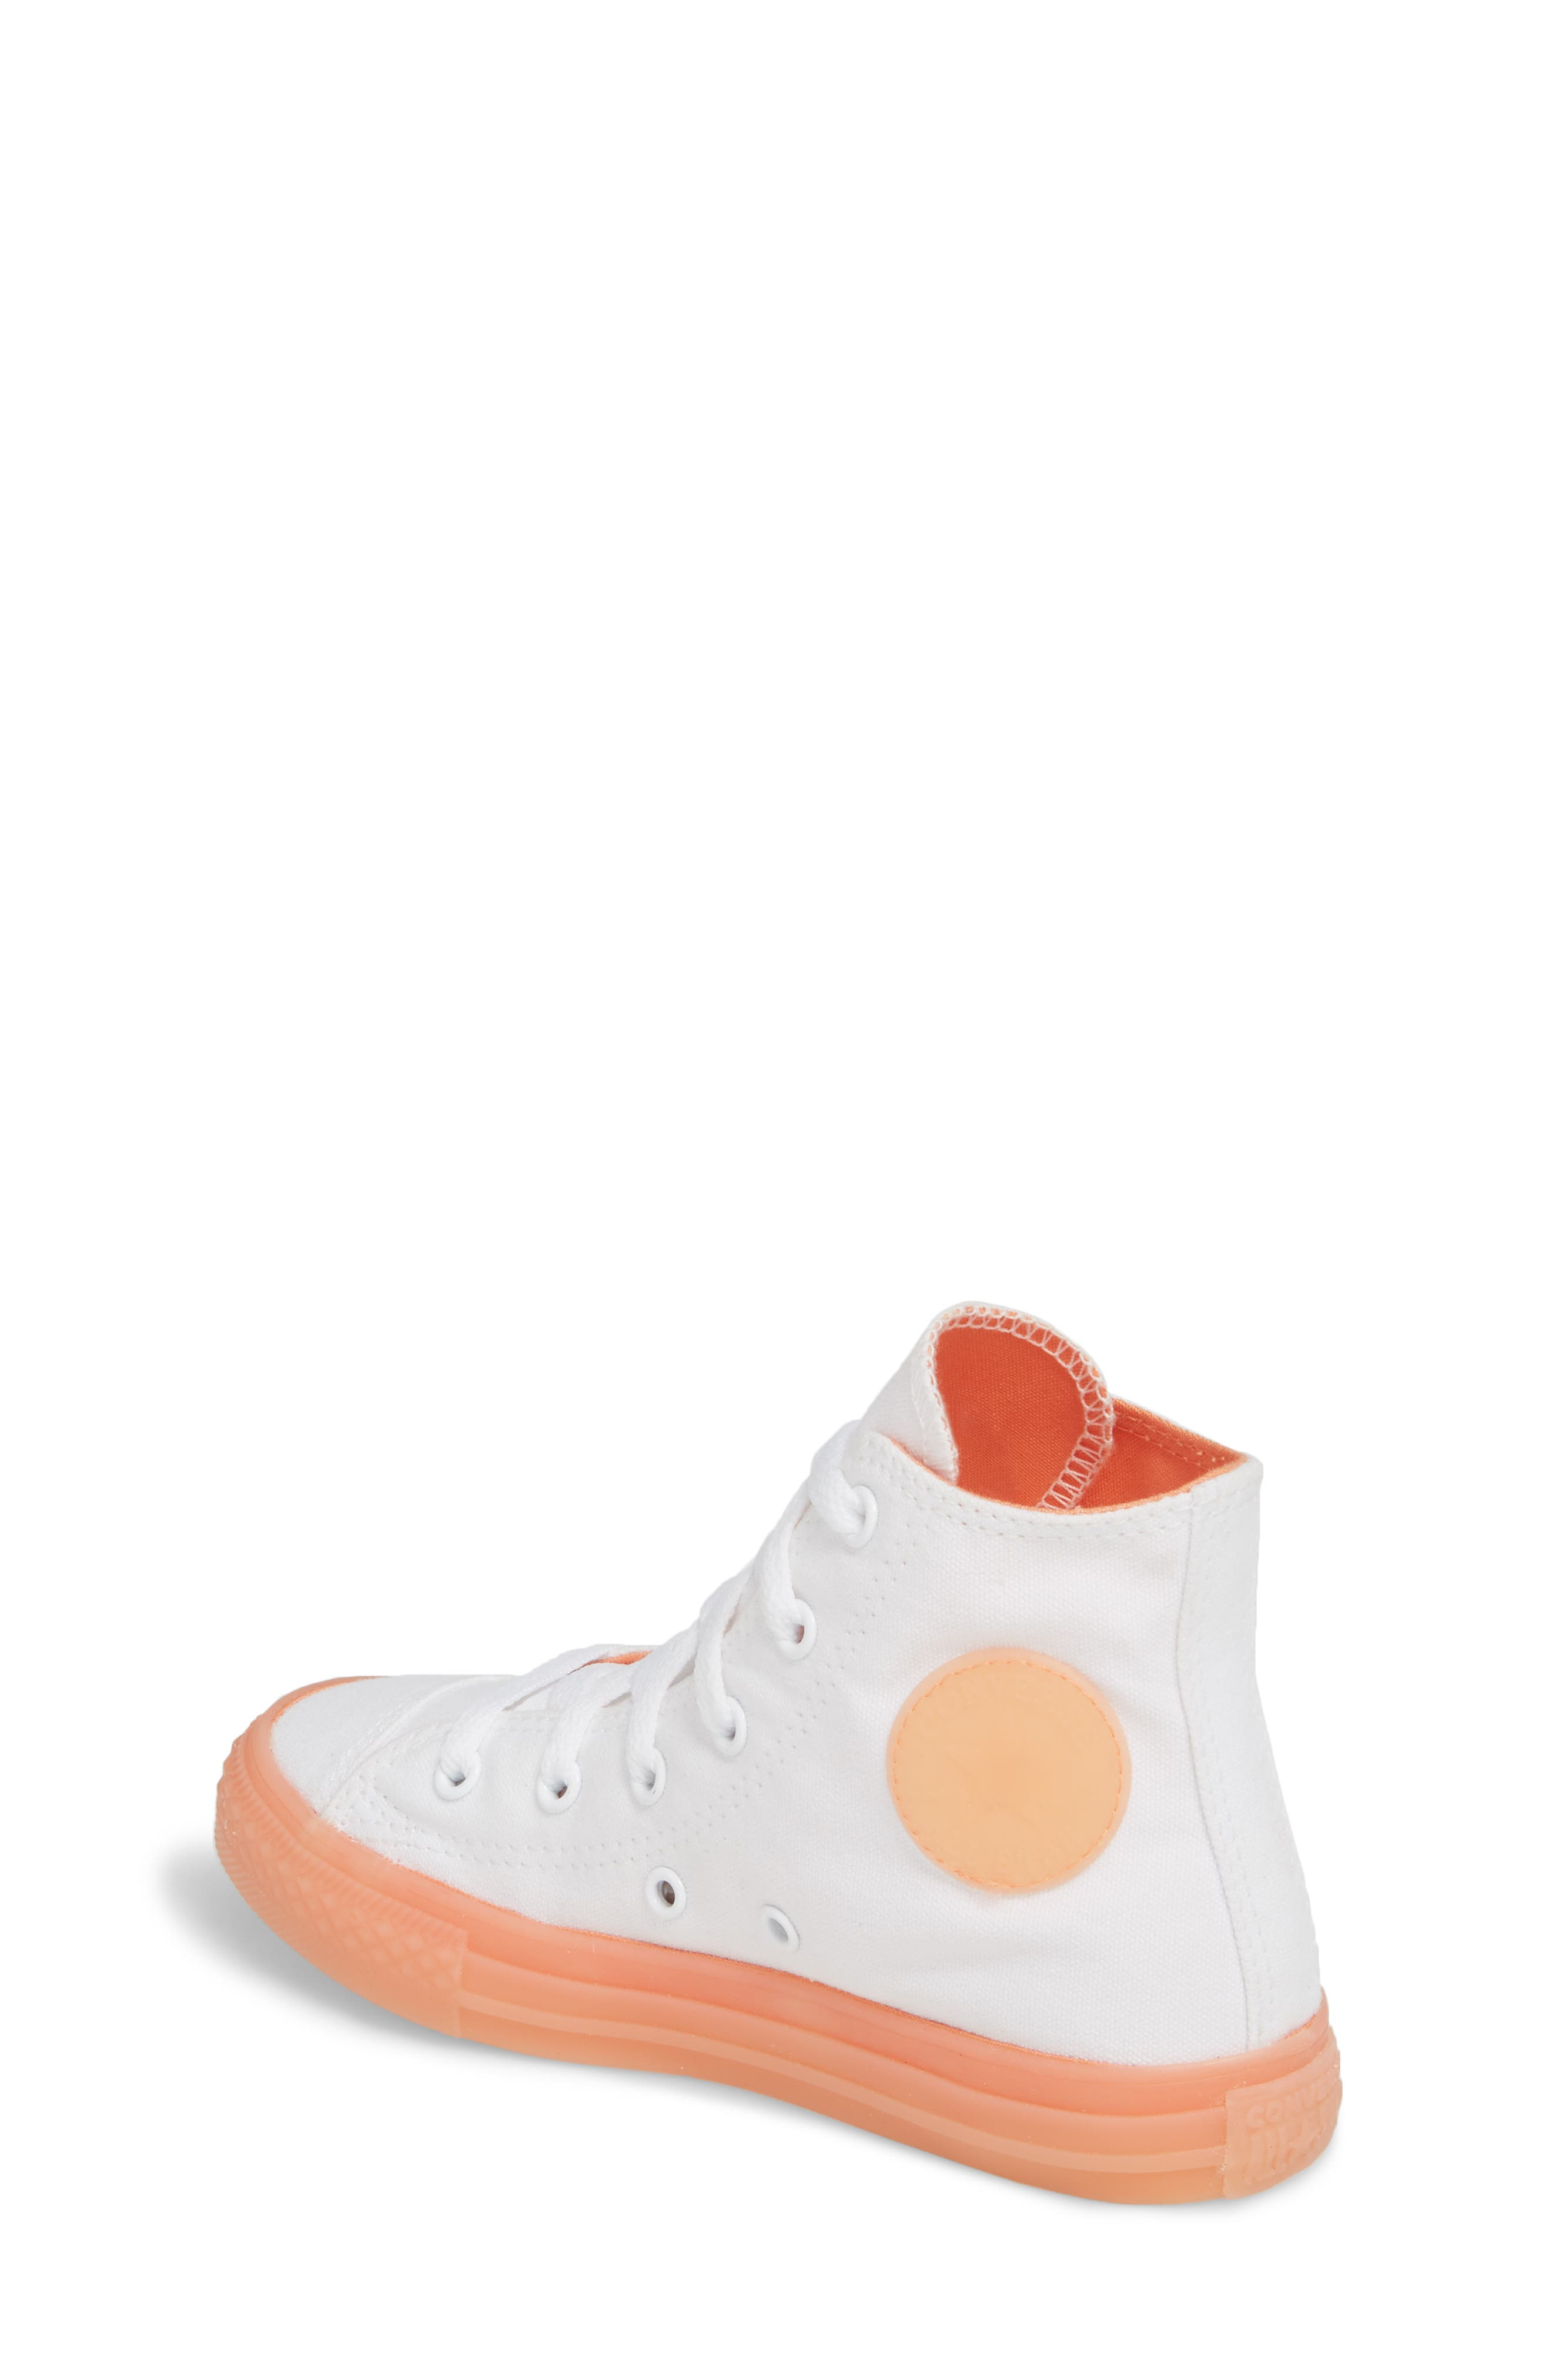 Chuck Taylor<sup>®</sup> All Star<sup>®</sup> Jelly High Top Sneaker,                             Alternate thumbnail 2, color,                             Orange